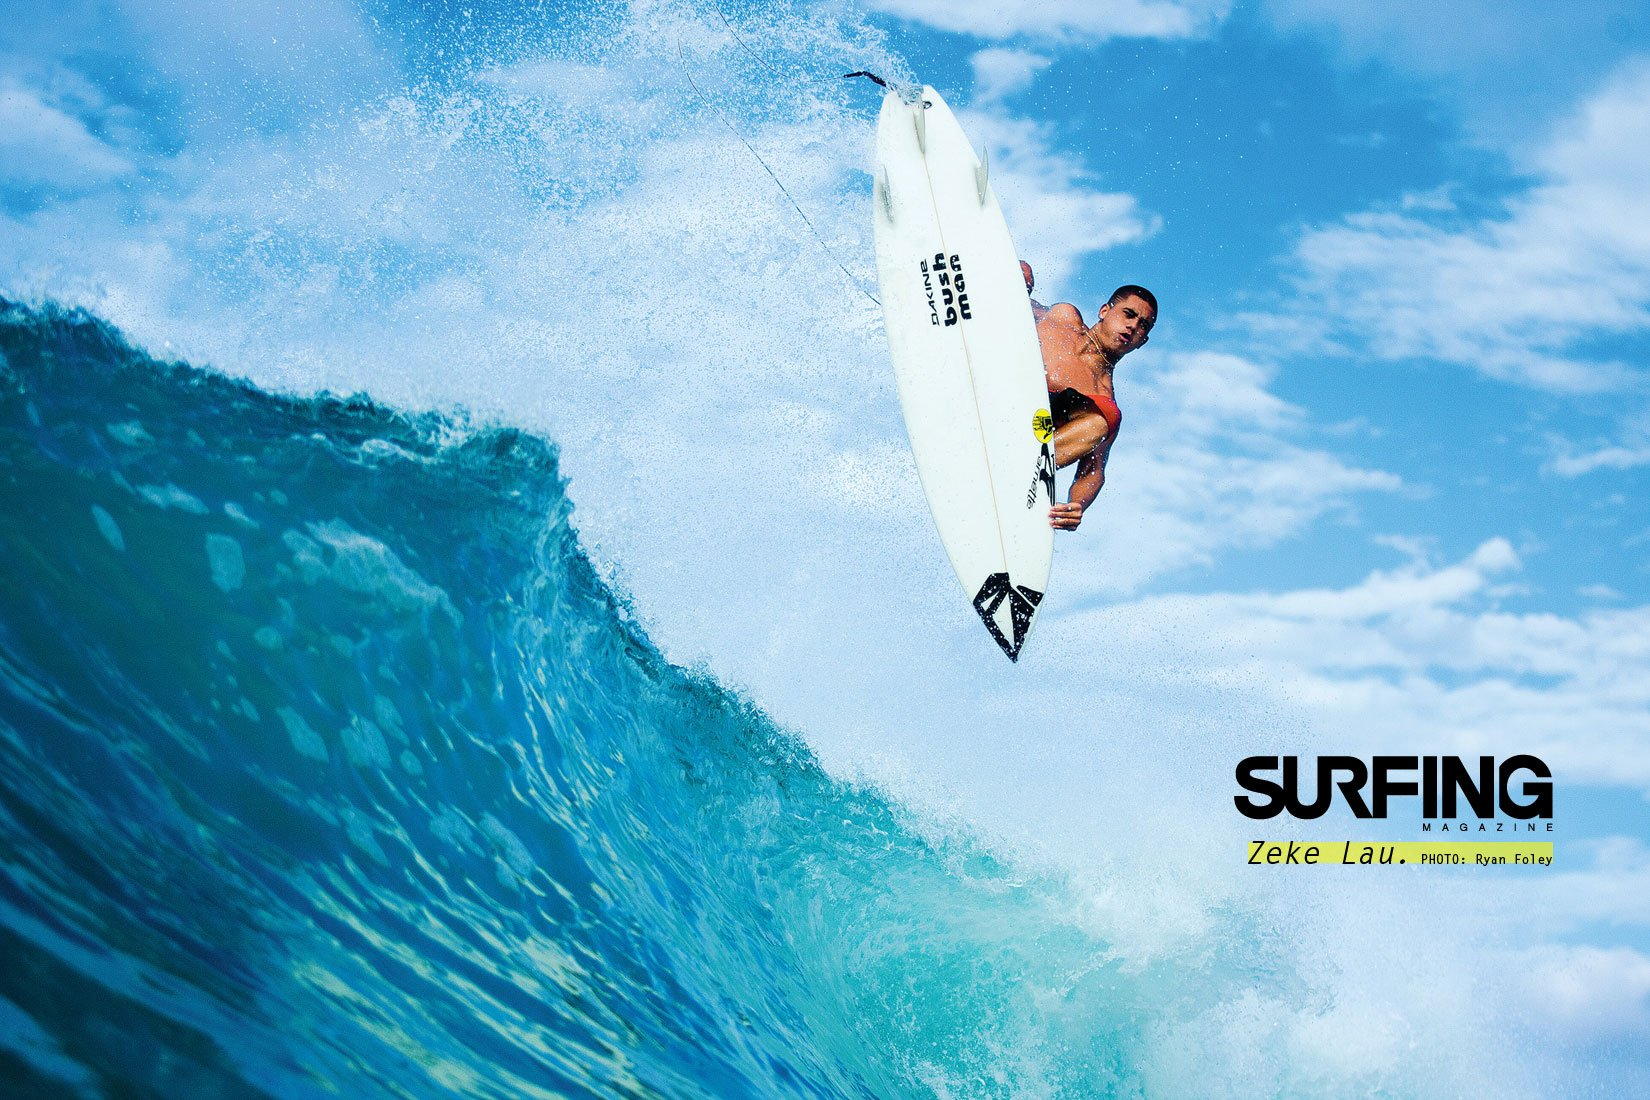 foley surf wallpaper 610x406 Surfing Magazine April Surf Wallpaper 1650x1100